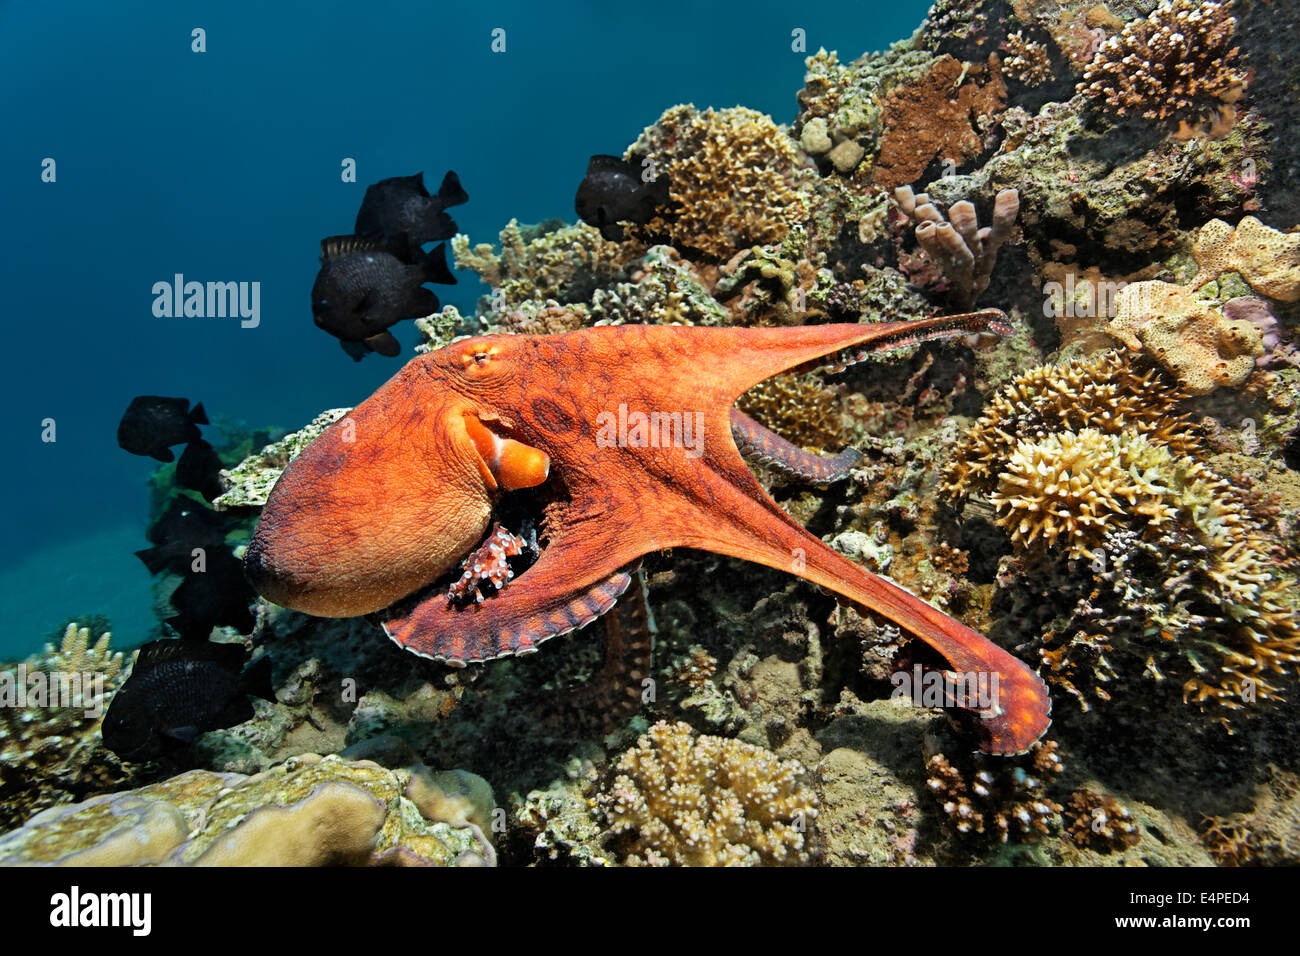 Poulpe commun (Octopus vulgaris), à une barrière de corail, Mer Rouge, Egypte Photo Stock